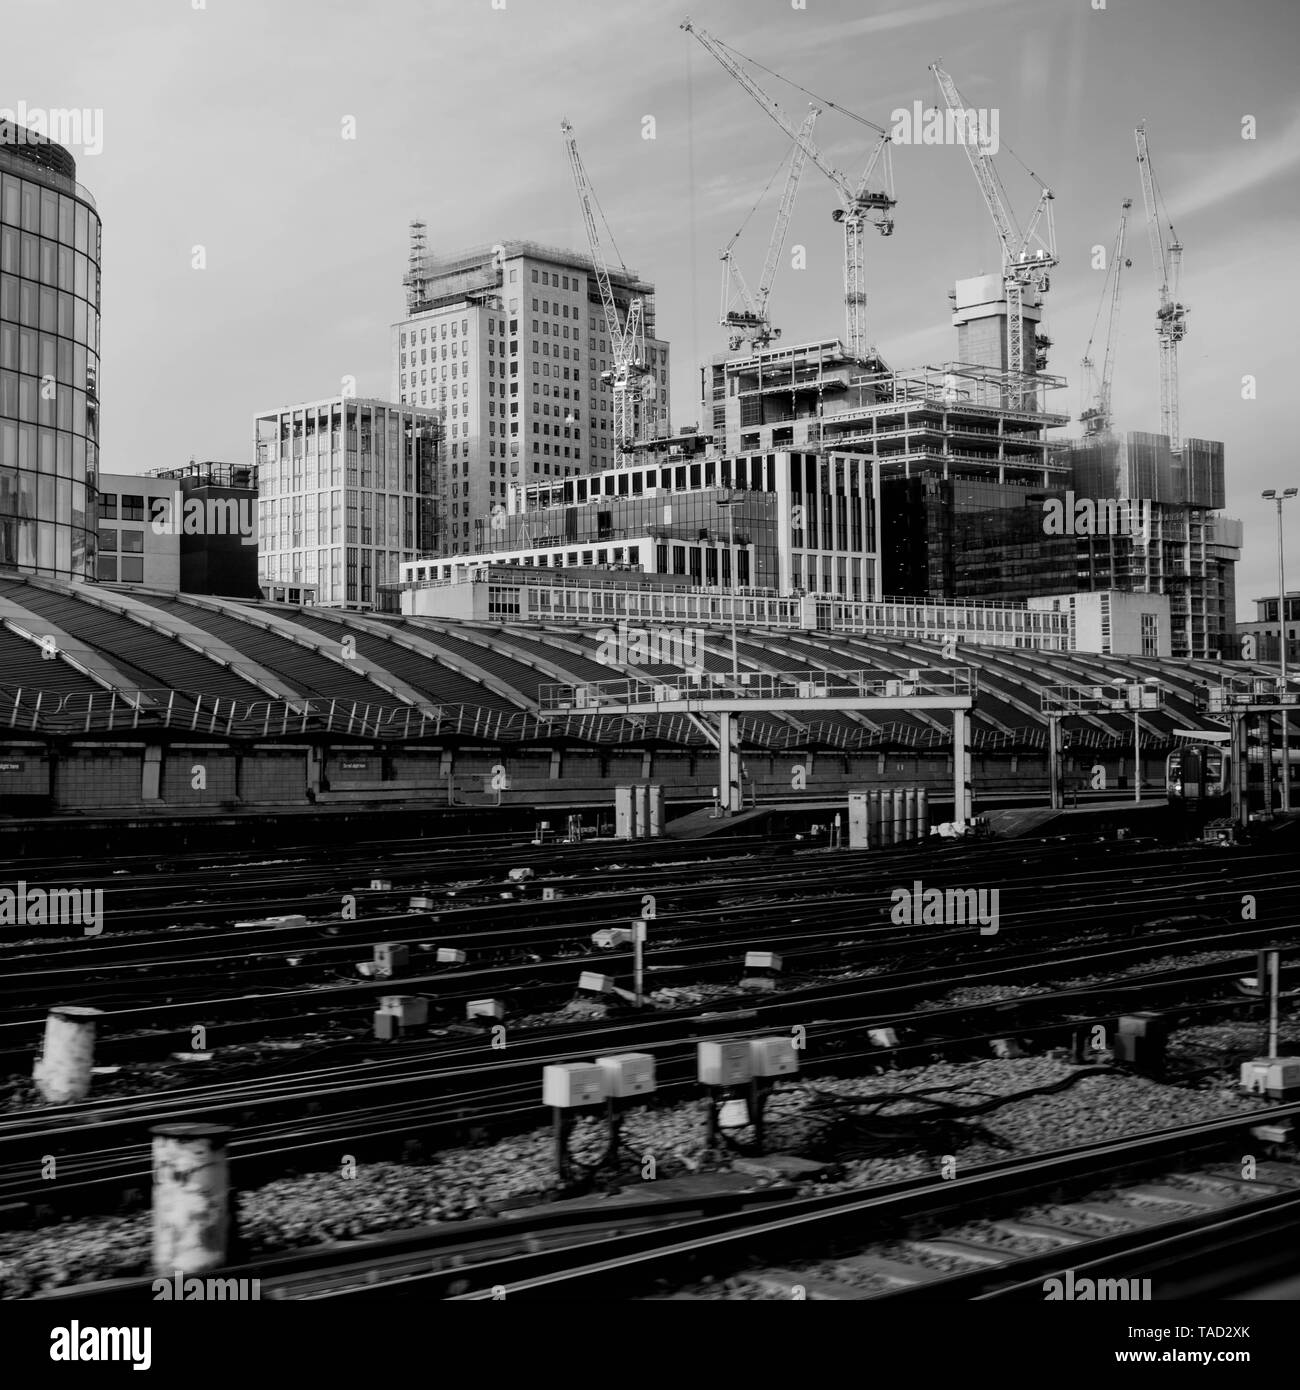 Railway Tracks Leaving Waterloo Station In London With No Trains or People with Tower Cranes and Construction Work in the Background - Stock Image